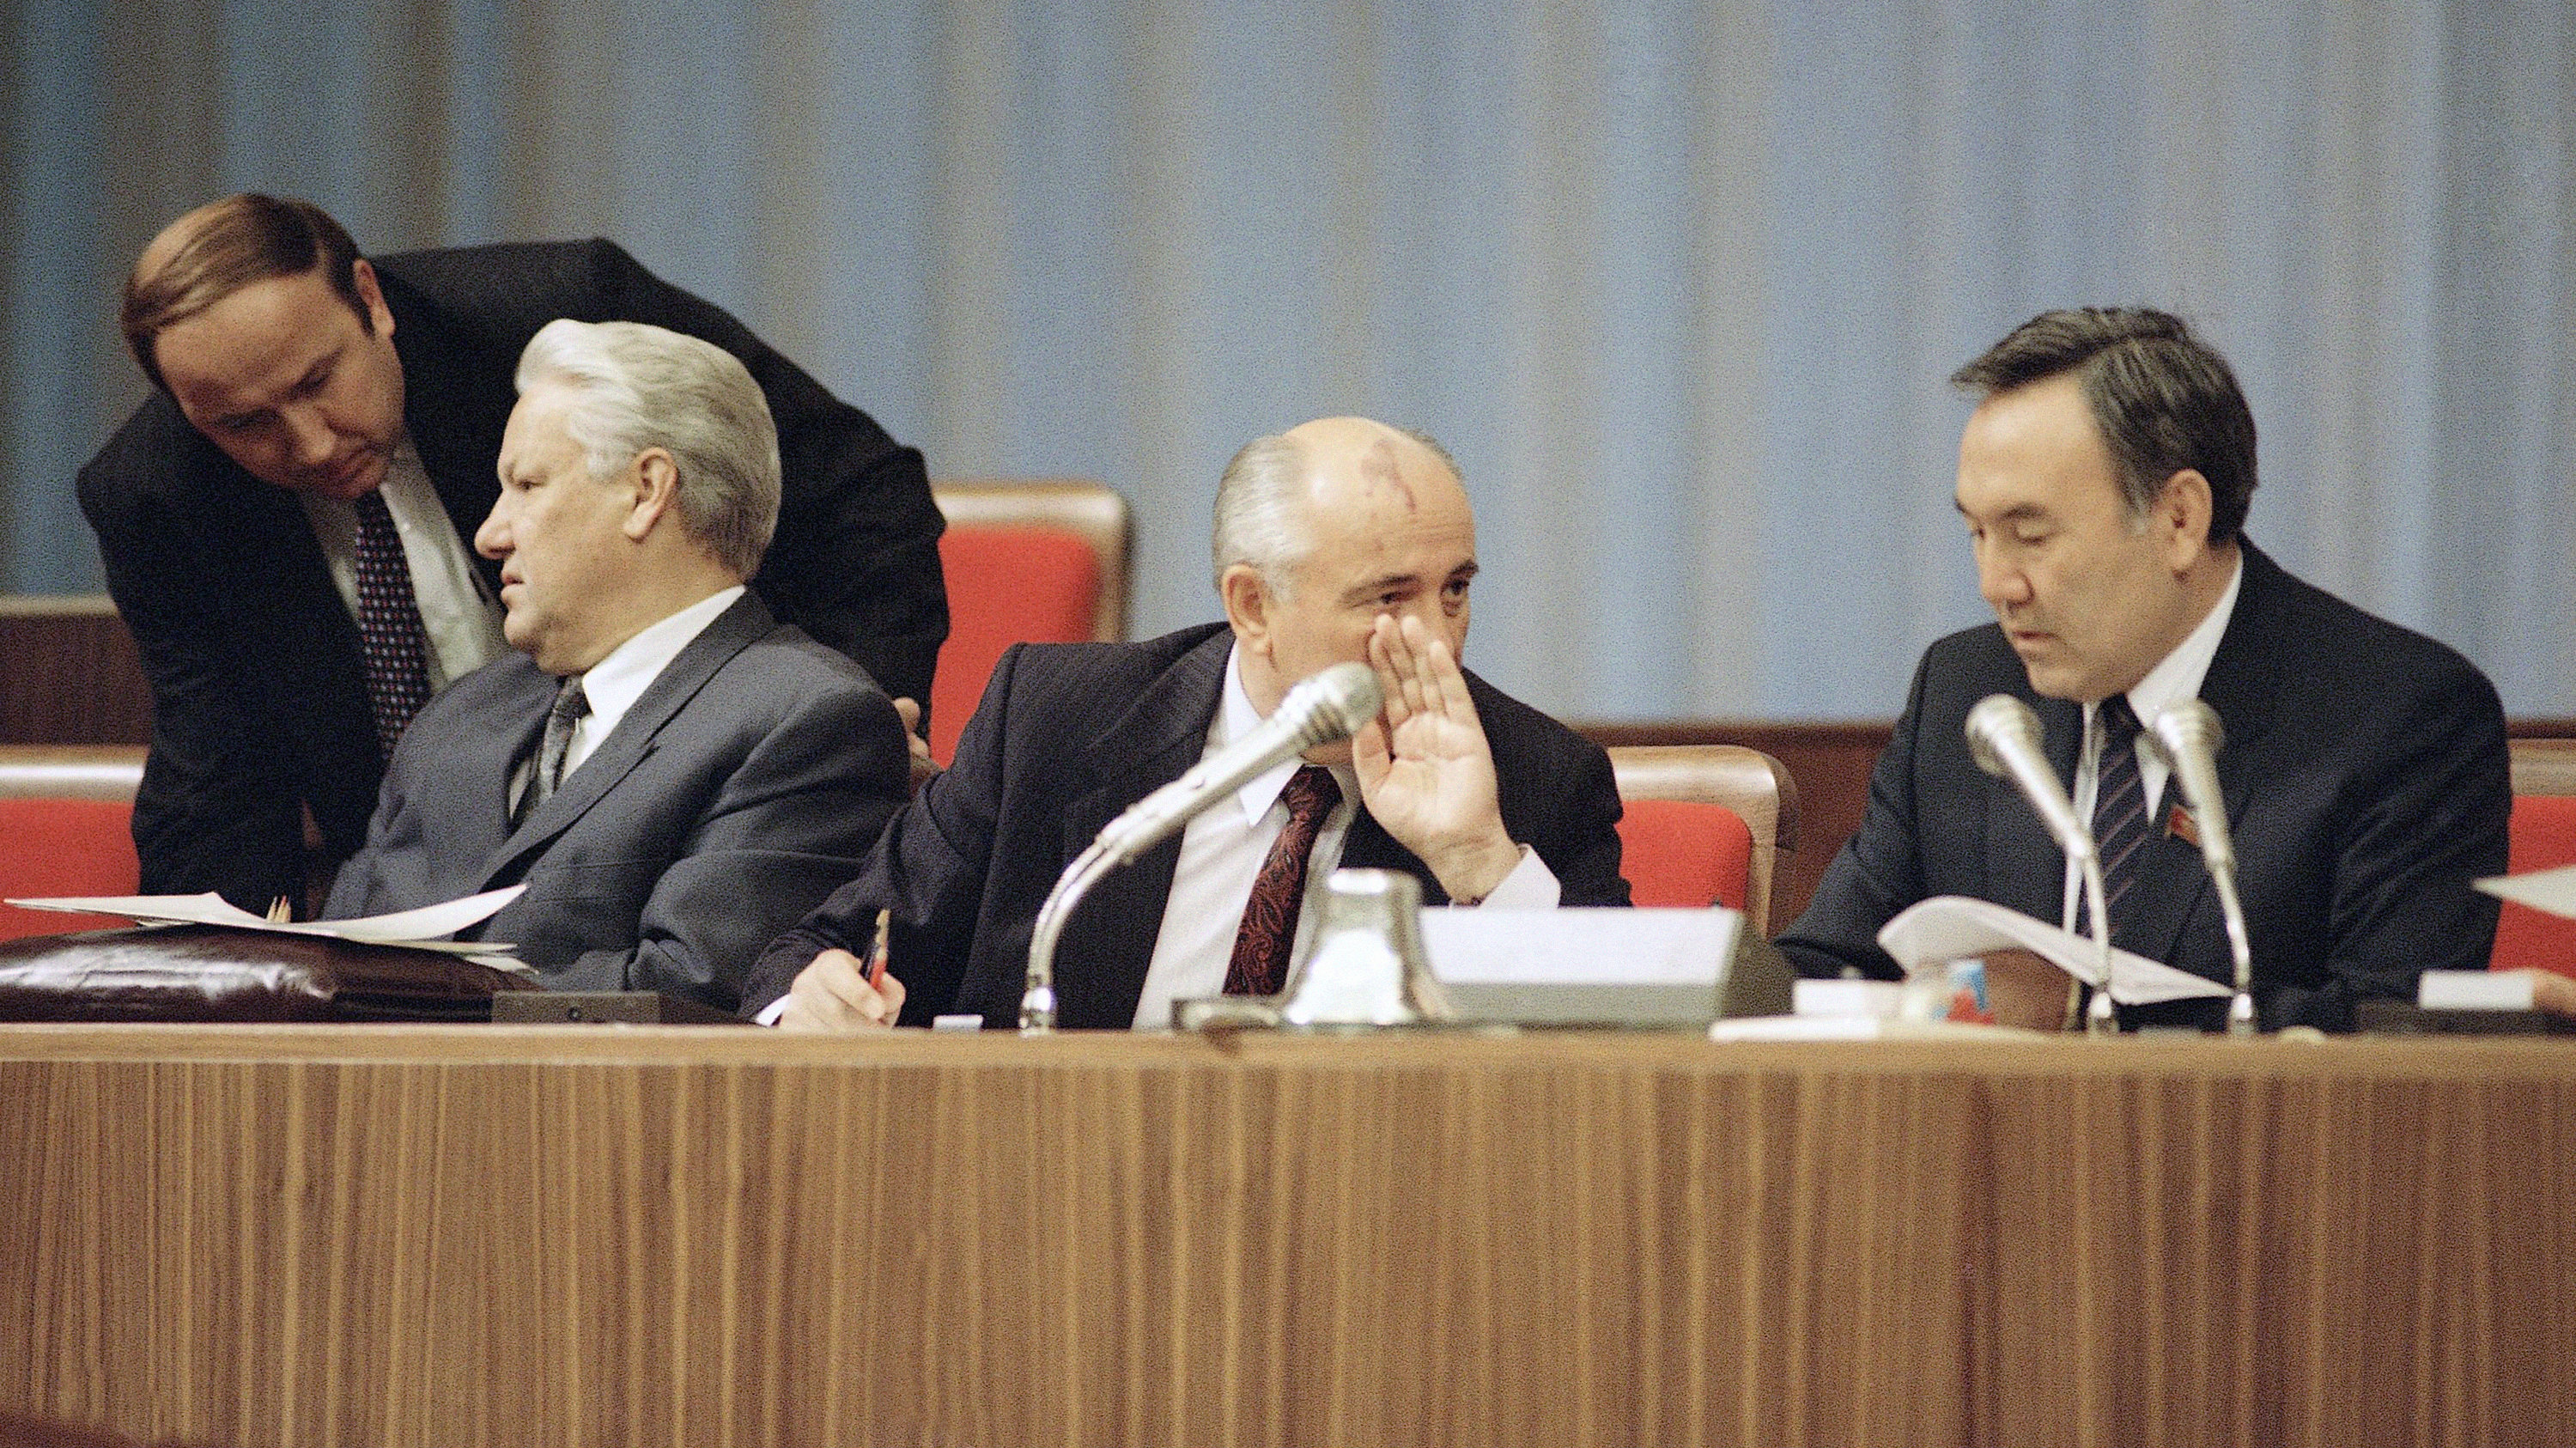 Soviet President Mikhail Gorbachev, center, whispes behind his hand to Nursultan Nazarbayev, President of Kazakhstan, as Russian President Boris Yeltsin, seated left, confers with a security guard during special session of the Congress of People's Deputies at the Kremlin, Moscow on Tuesday, Sept. 3, 1991.